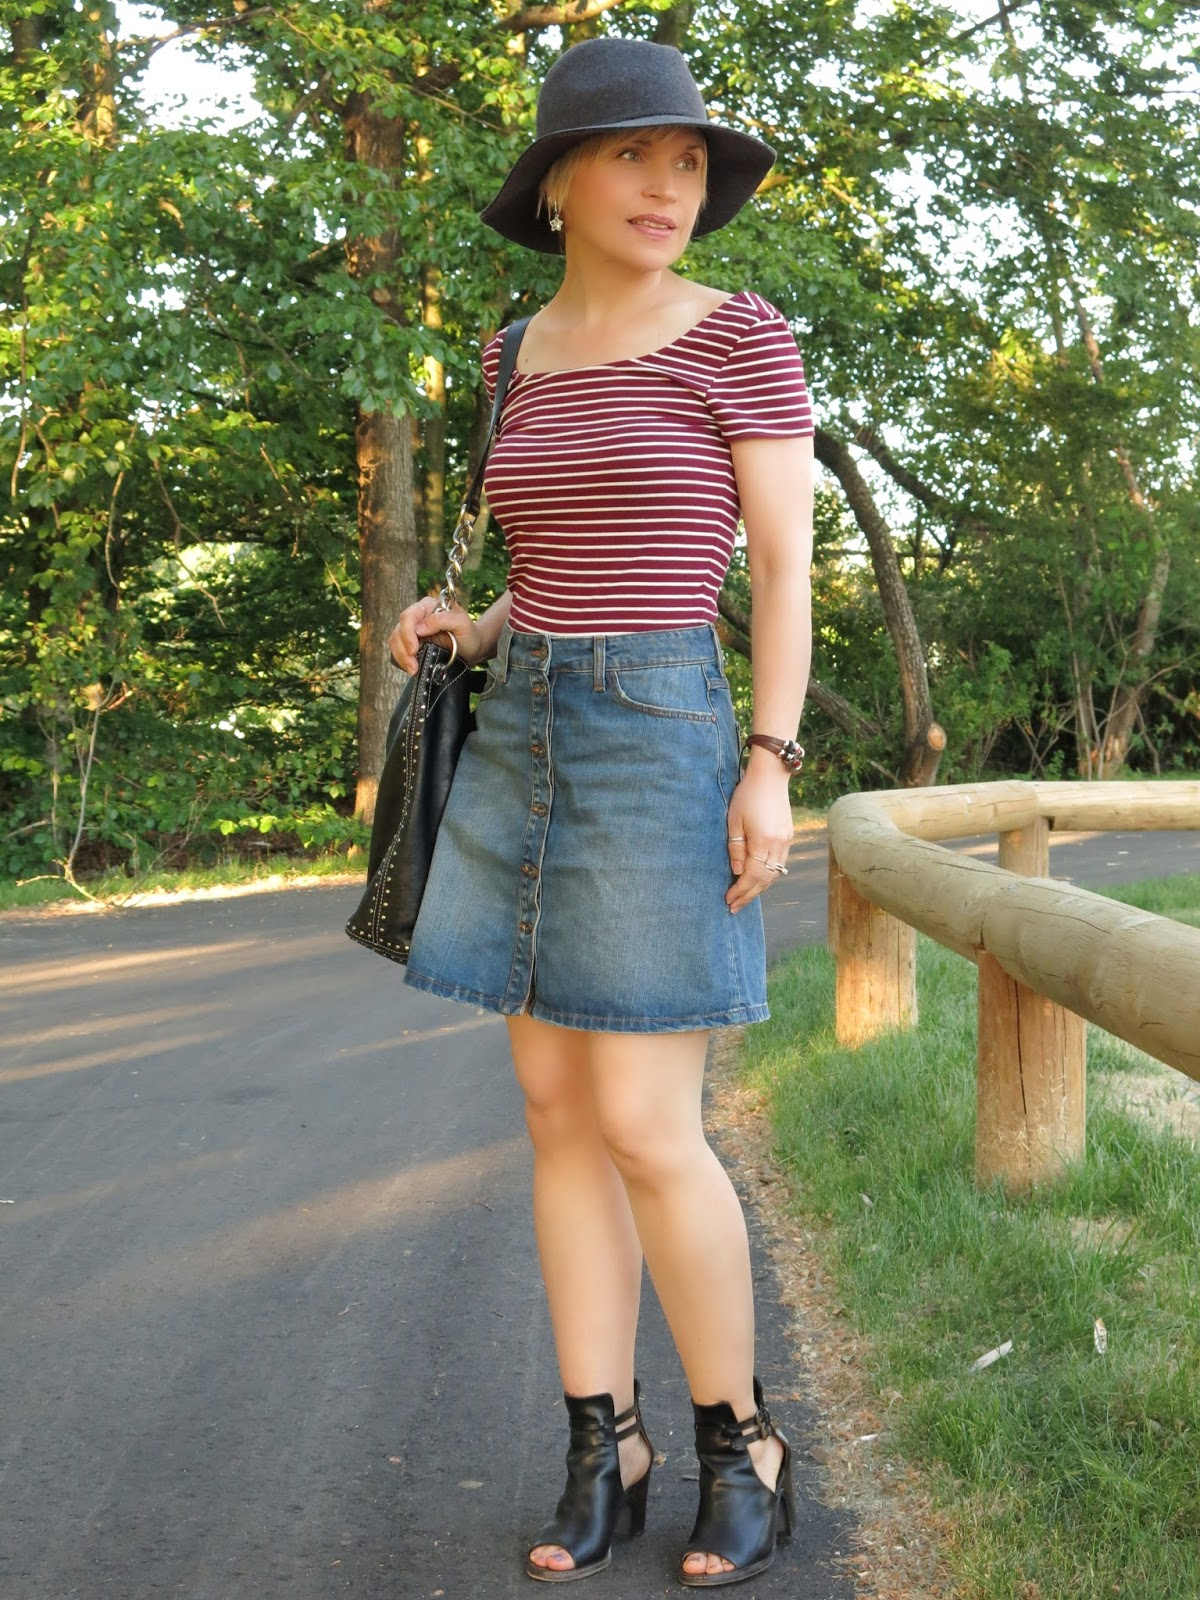 styling a button-front A-line mini skirt with a striped t-shirt and floppy hat